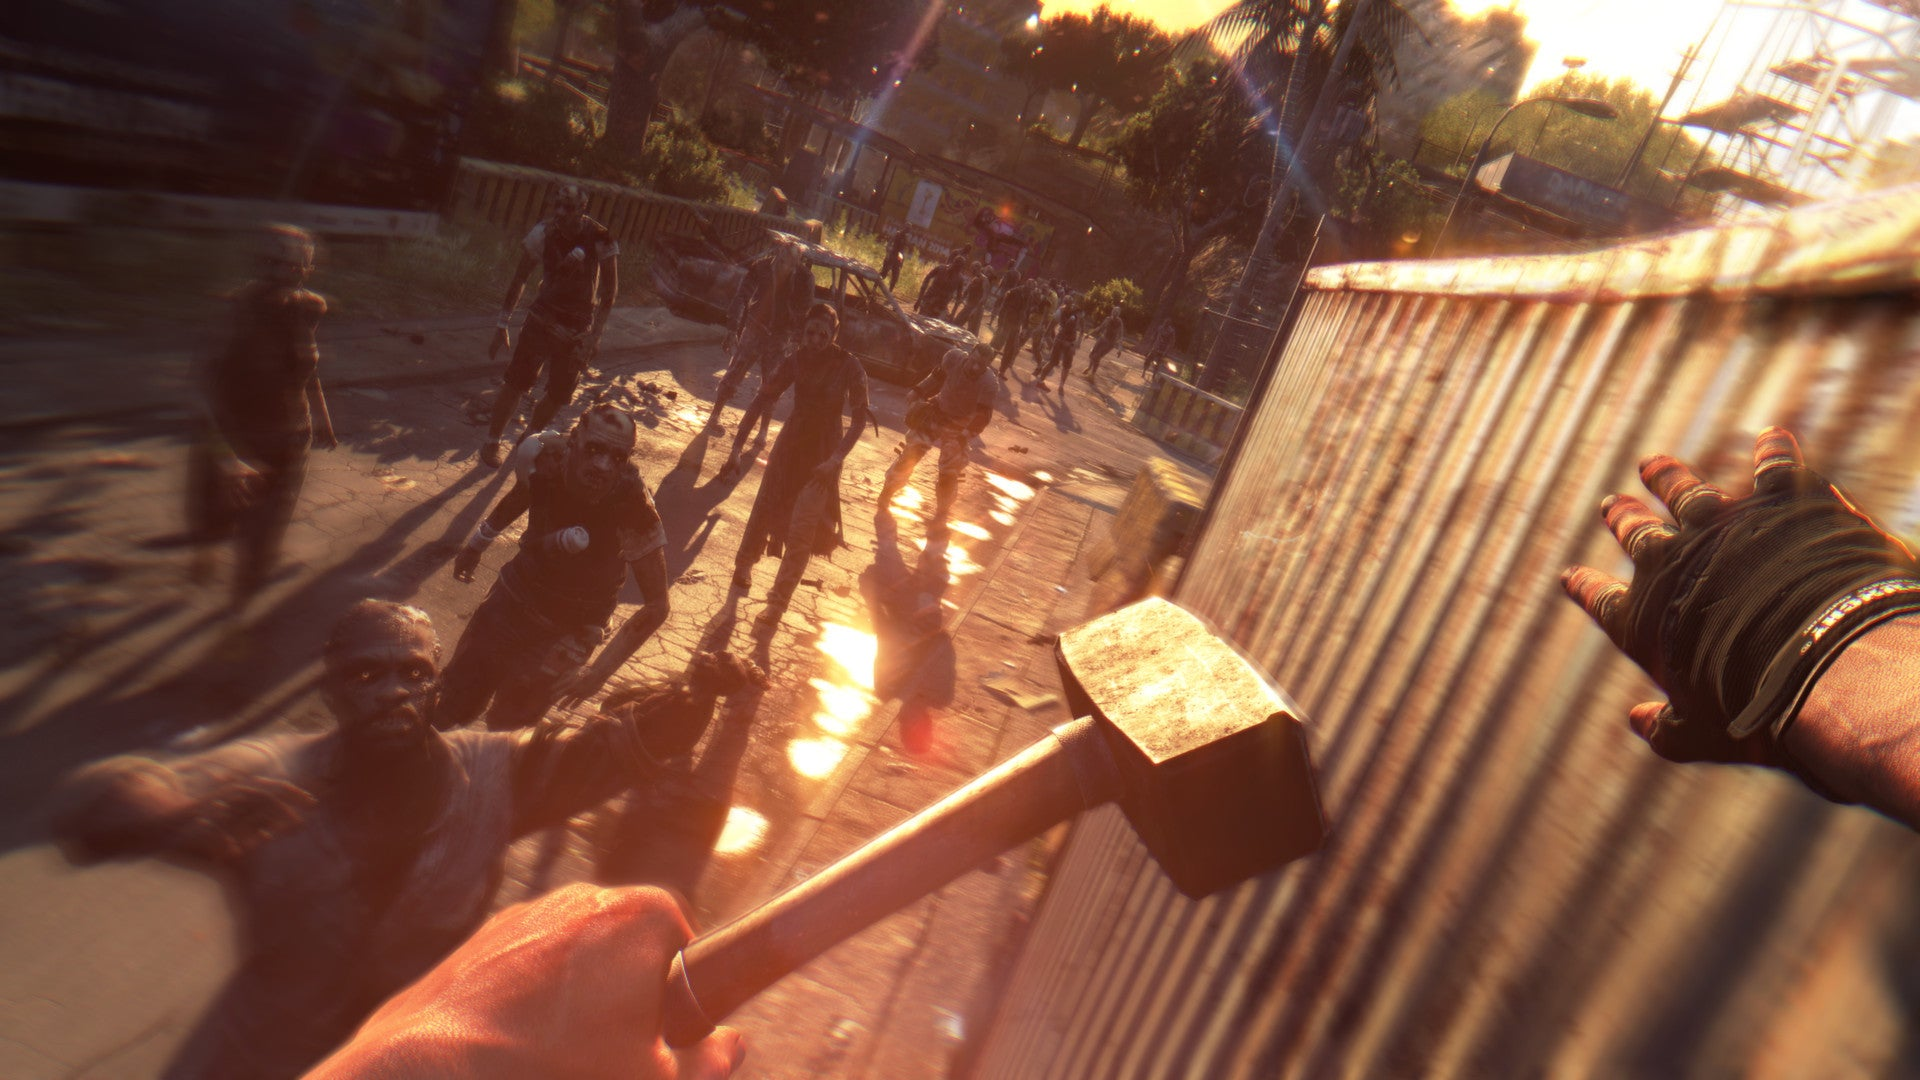 Dying Light preview: Zombies are even more stomach-churning in